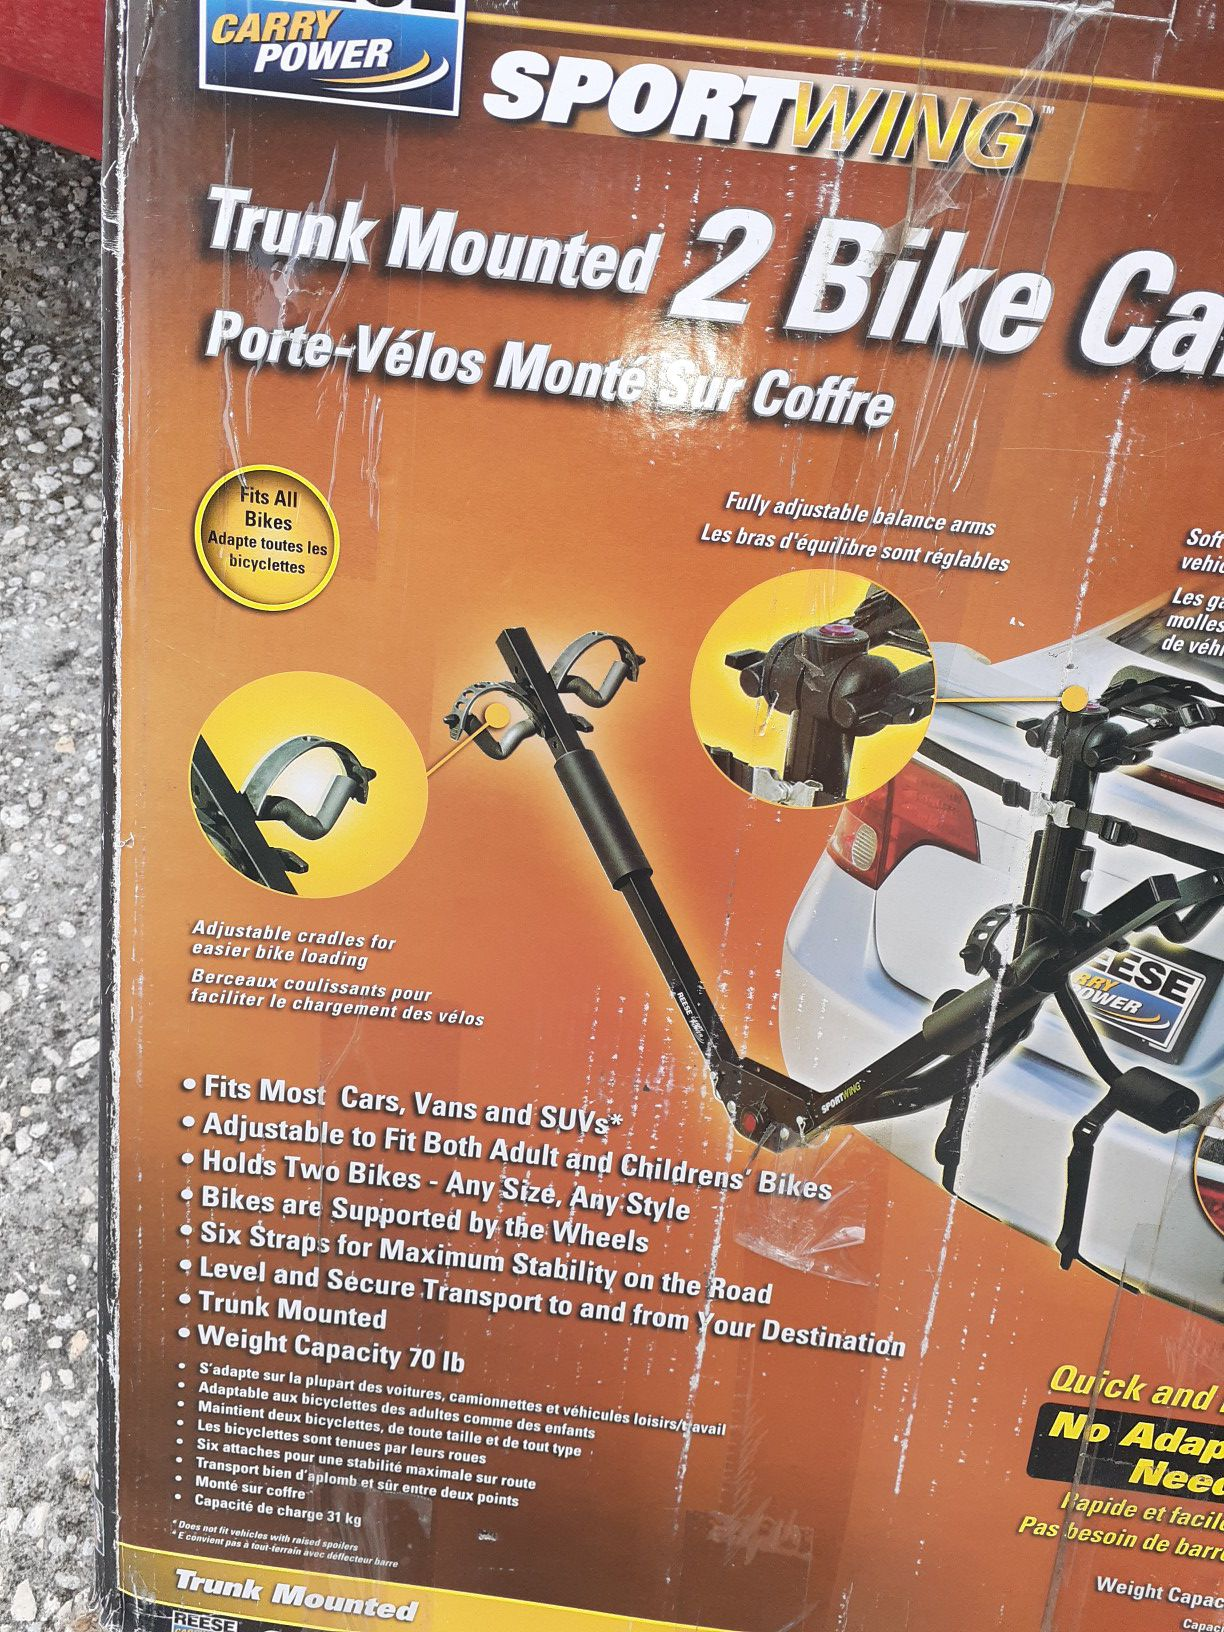 Reese sportwing trunk mounted 2 bike carrier